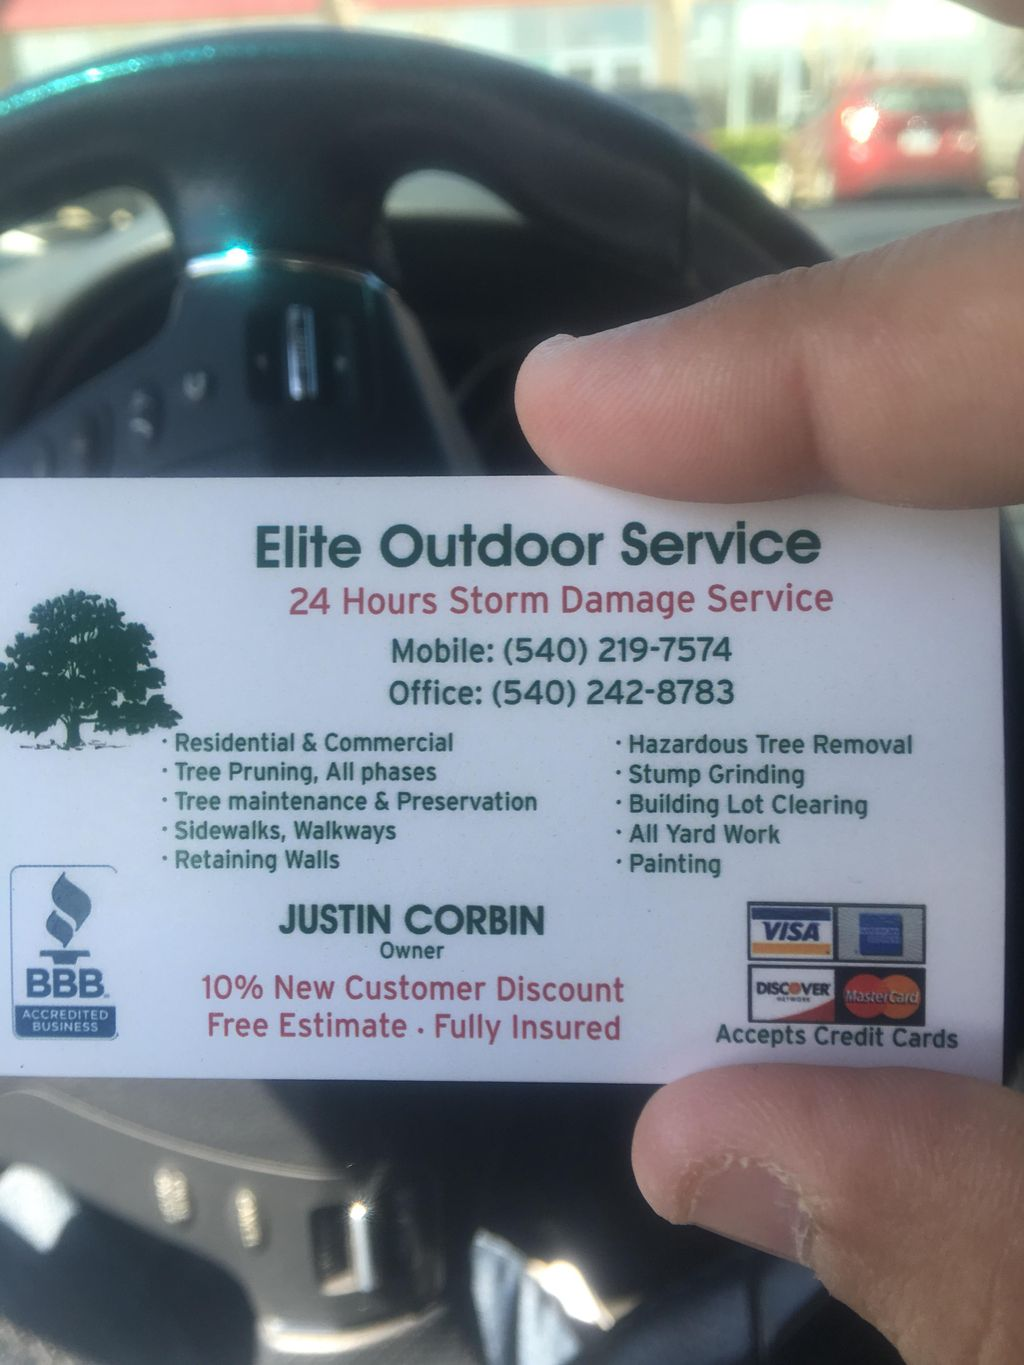 Elite Outdoor Services